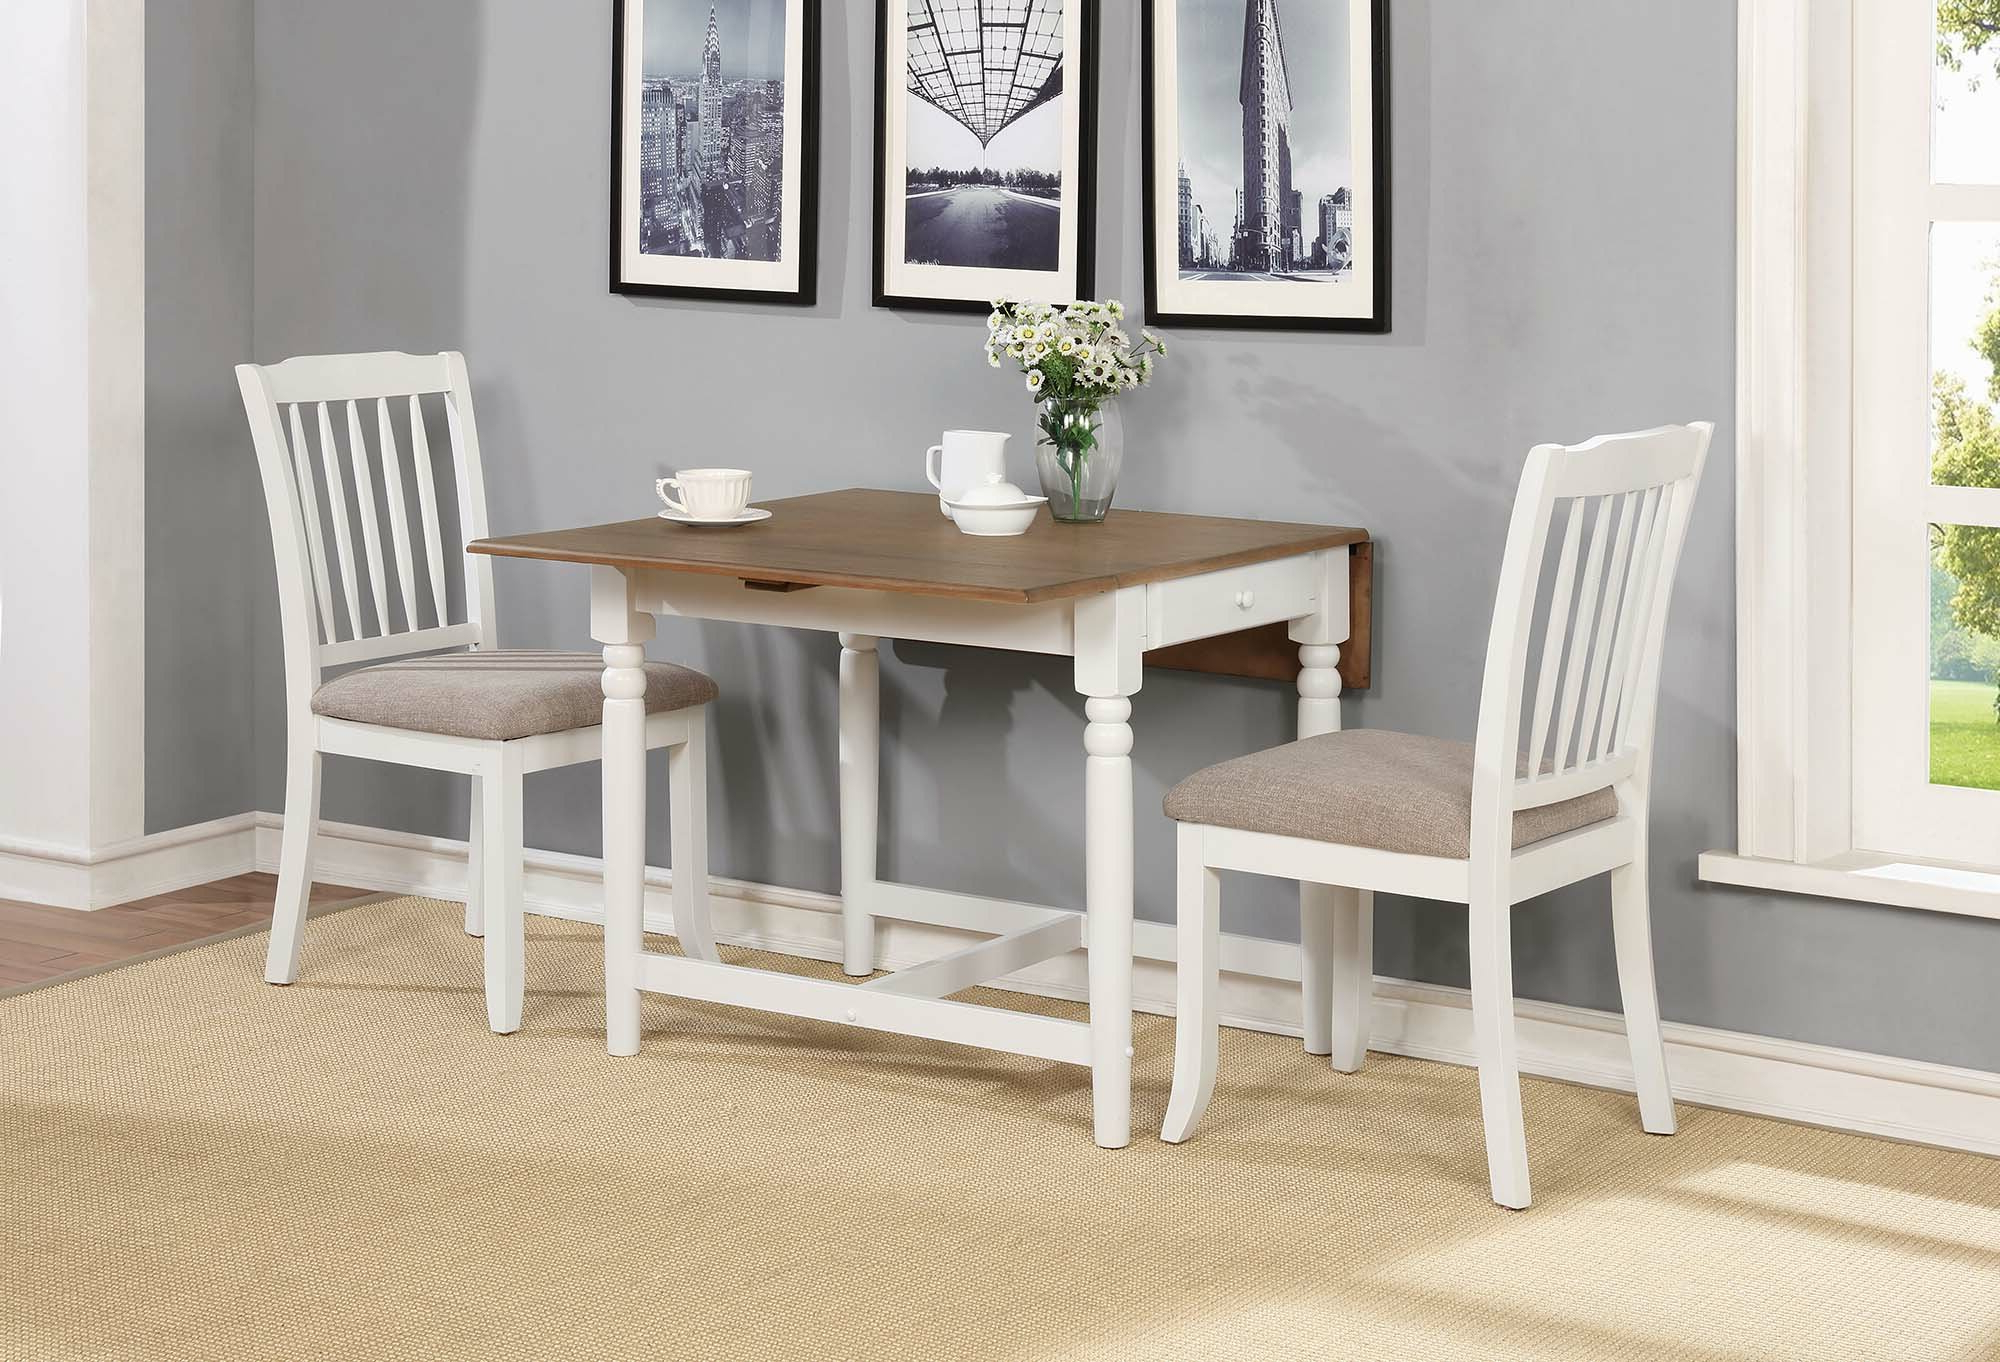 Wayfair Inside Most Popular Unfinished Drop Leaf Casual Dining Tables (View 6 of 25)